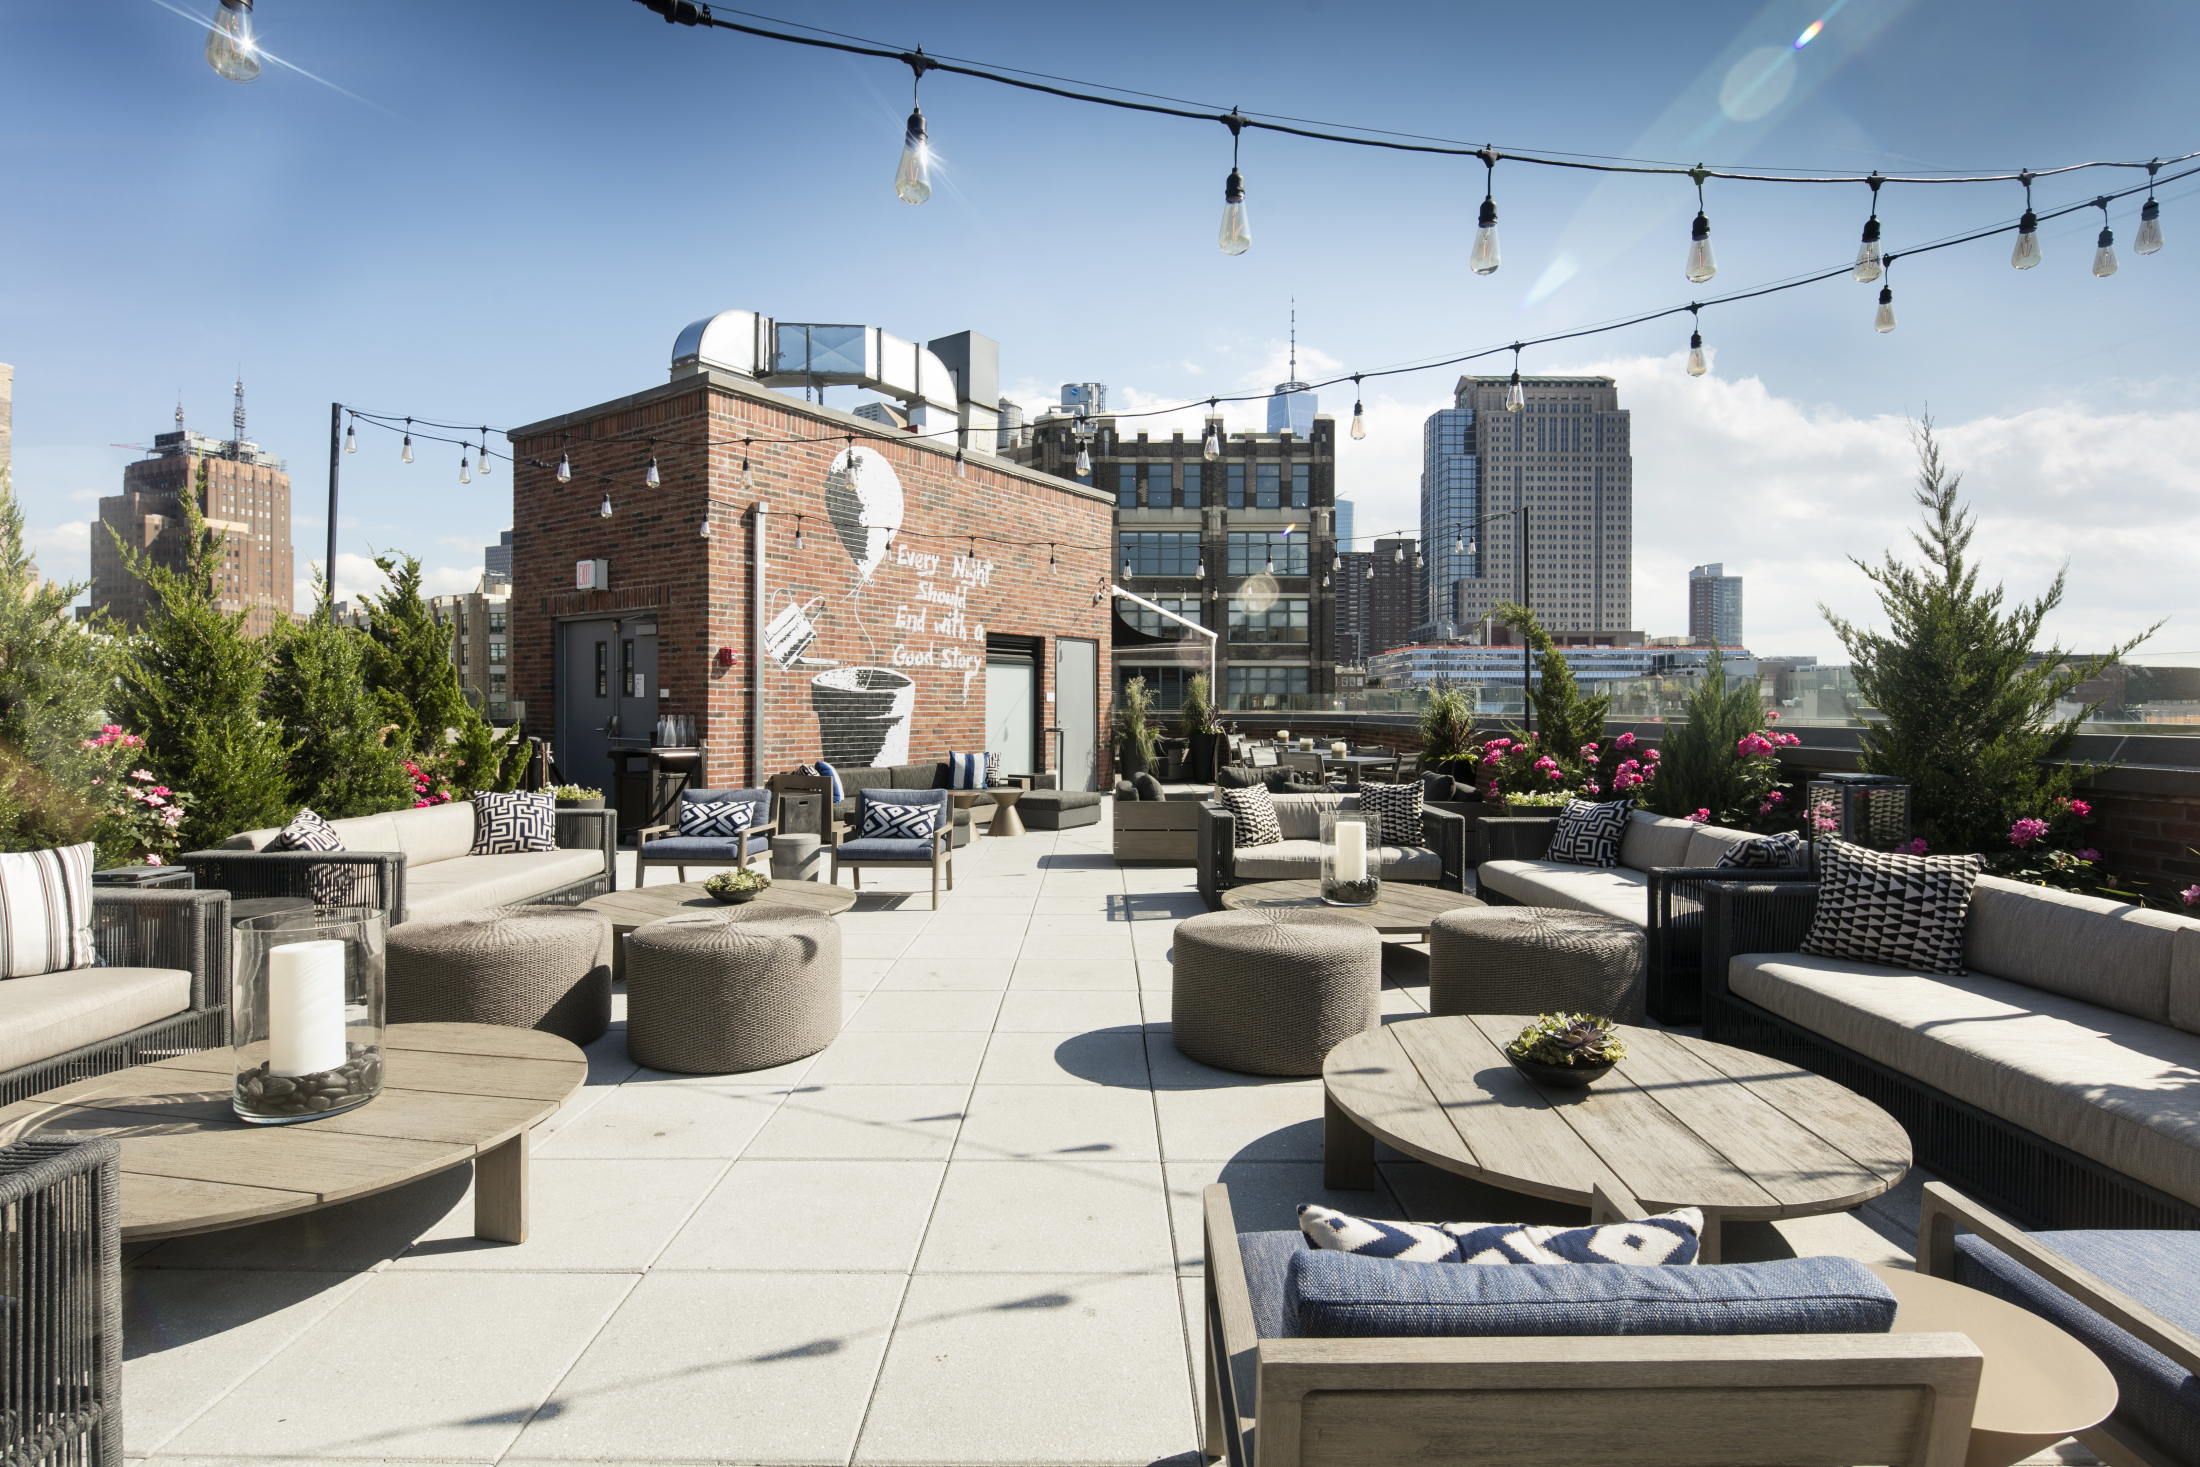 Rooftop space in Arlo SoHo with many seating areas and mural in the back